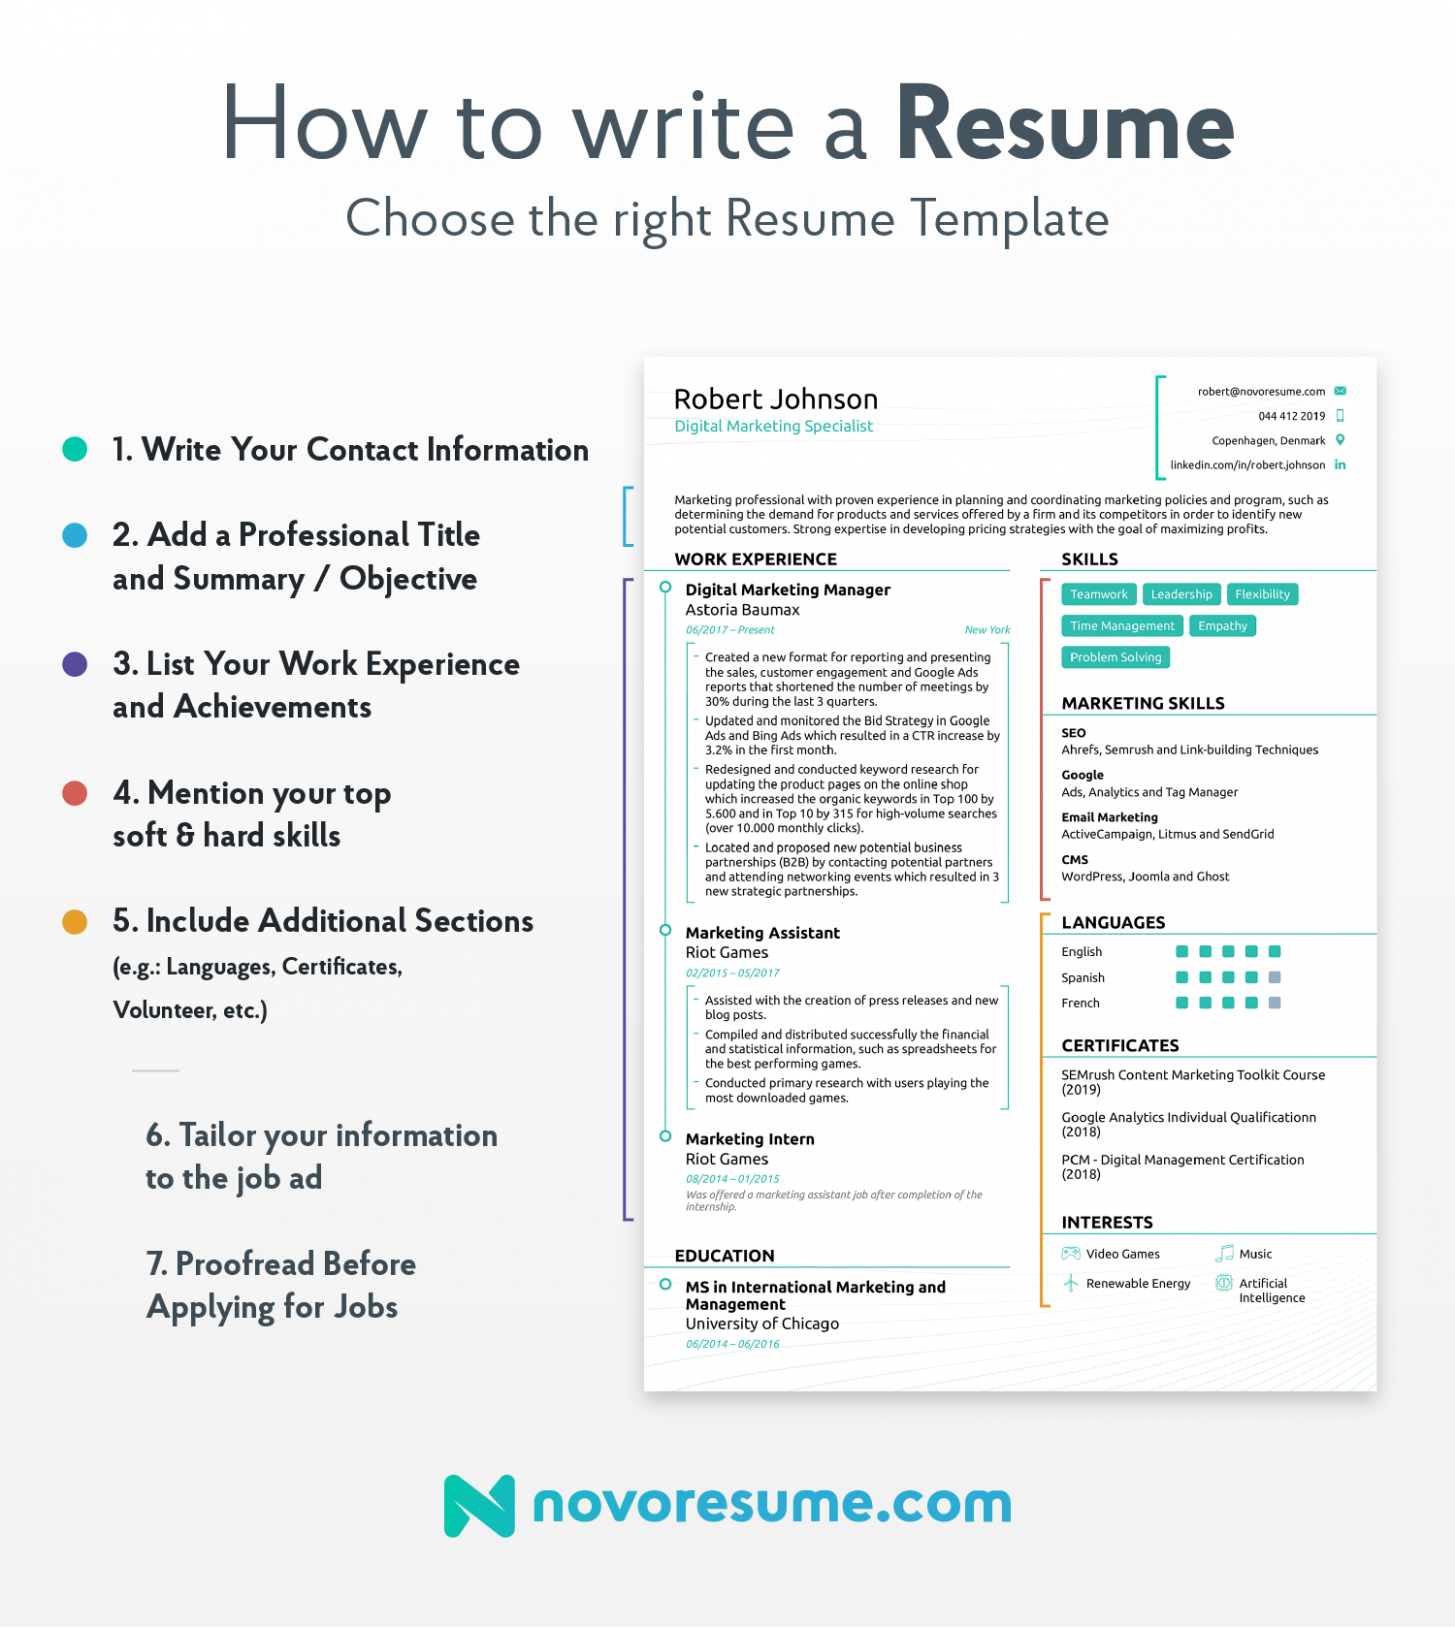 10 Greatest Job Interview Resume Job Resume Examples Resume Fonts How To Make Resume